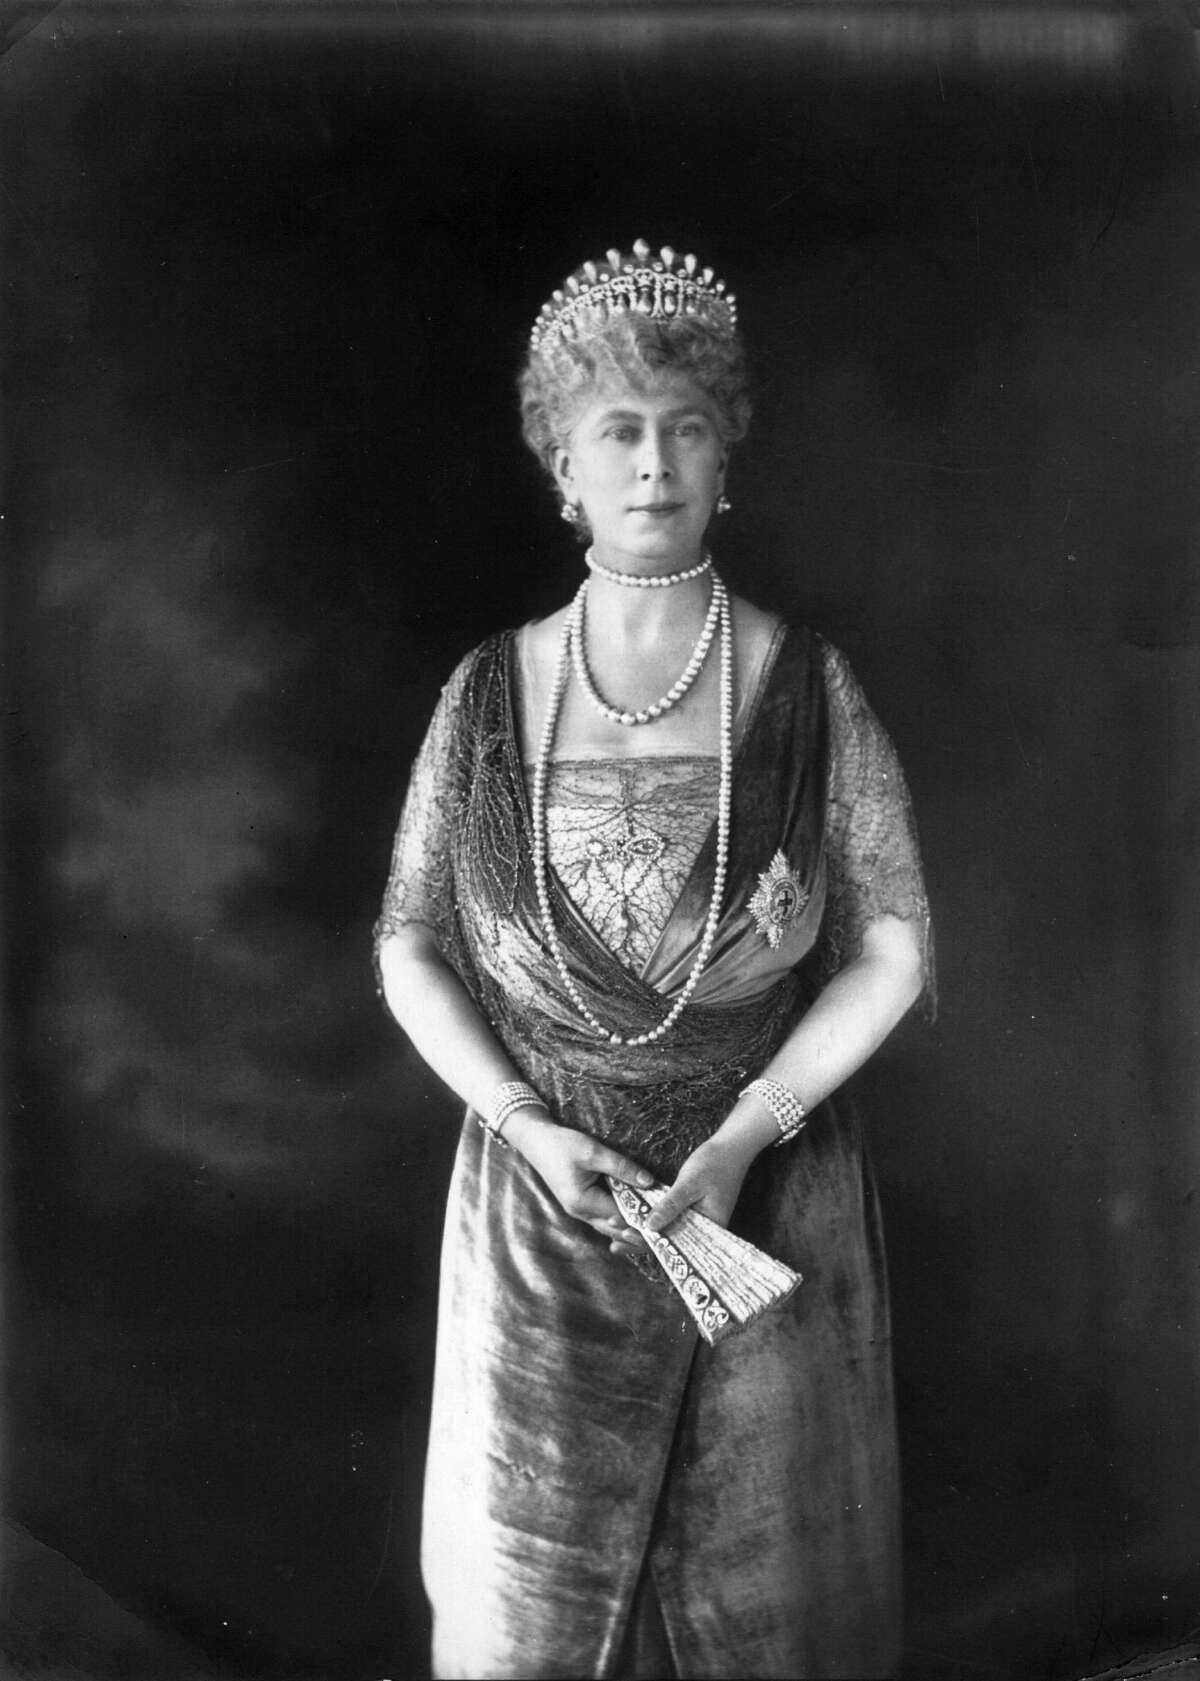 Circa 1926: Queen Mary wife of George V, the King of England wears the Cambridge Lovers Knot.